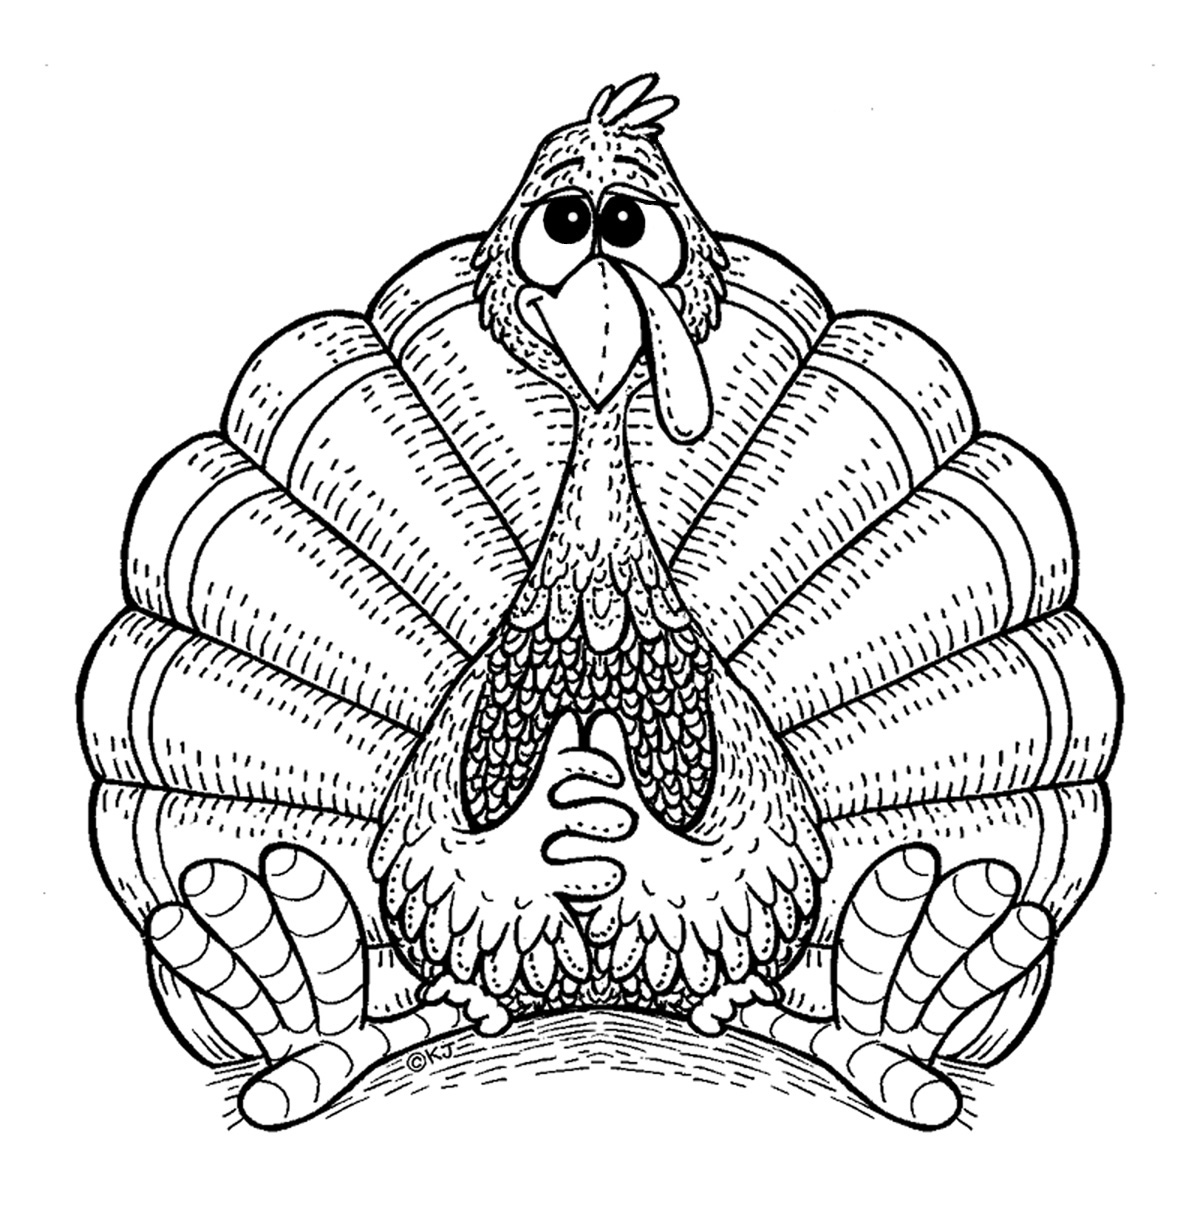 turkeys to color turkey coloring pages for kids coloring pages for kids color to turkeys